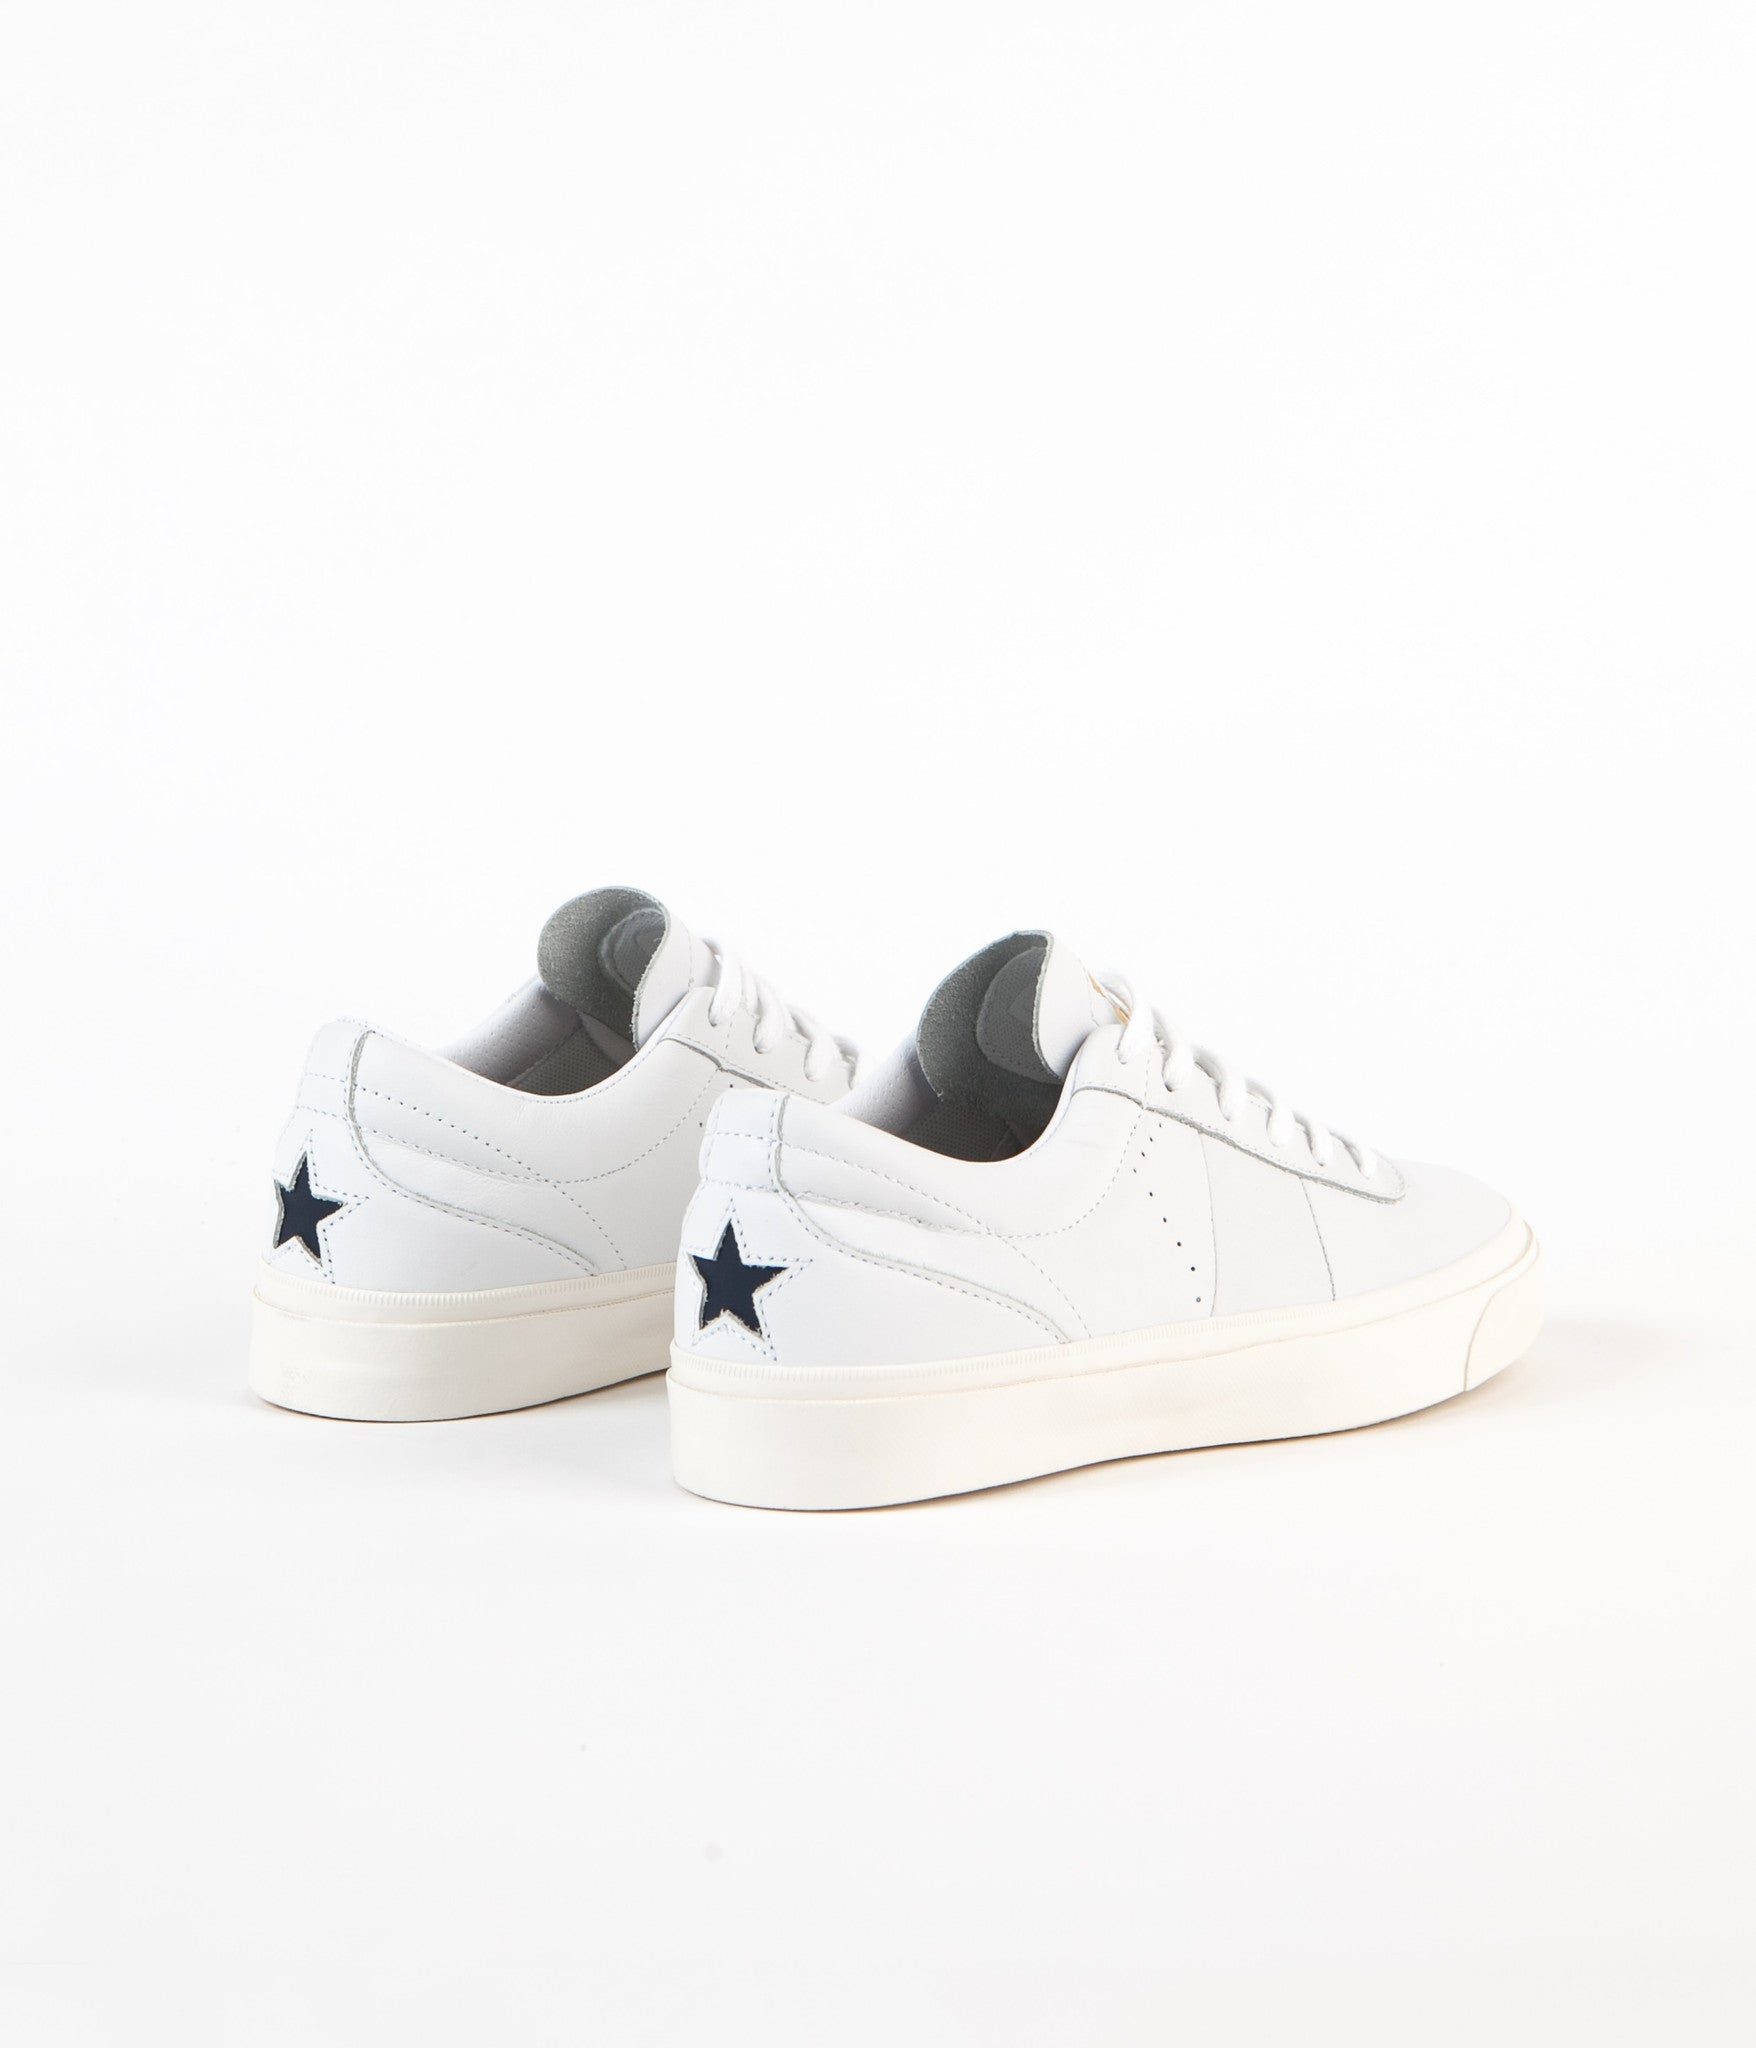 9ad03748ba44 ... Converse One Star Ox CC Sage Elsesser Shoes - White   White   Obsidian  ...